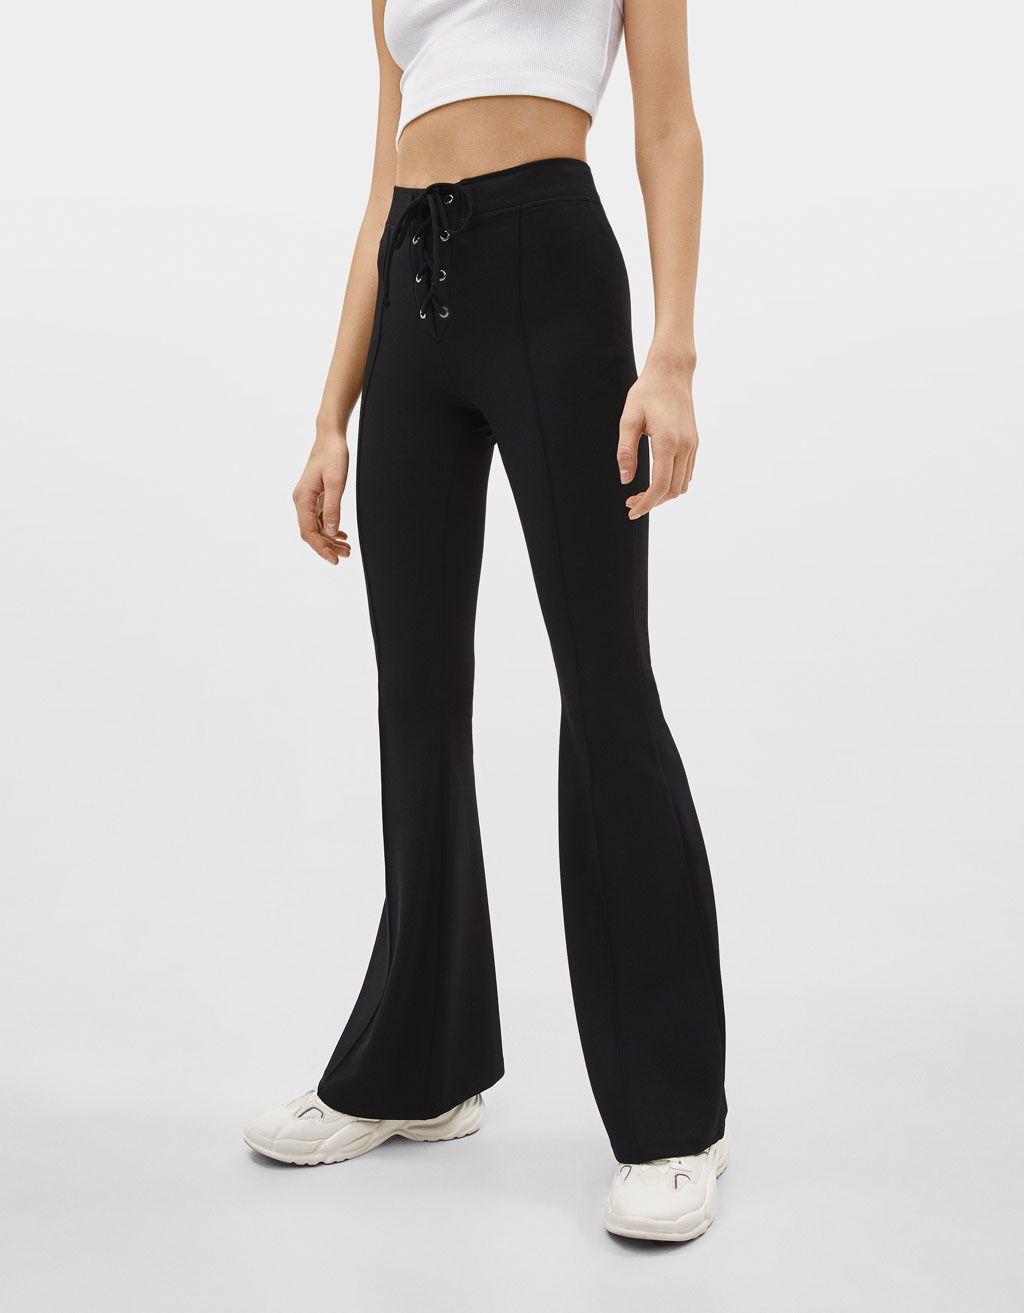 Pantalon lace up coupe flare